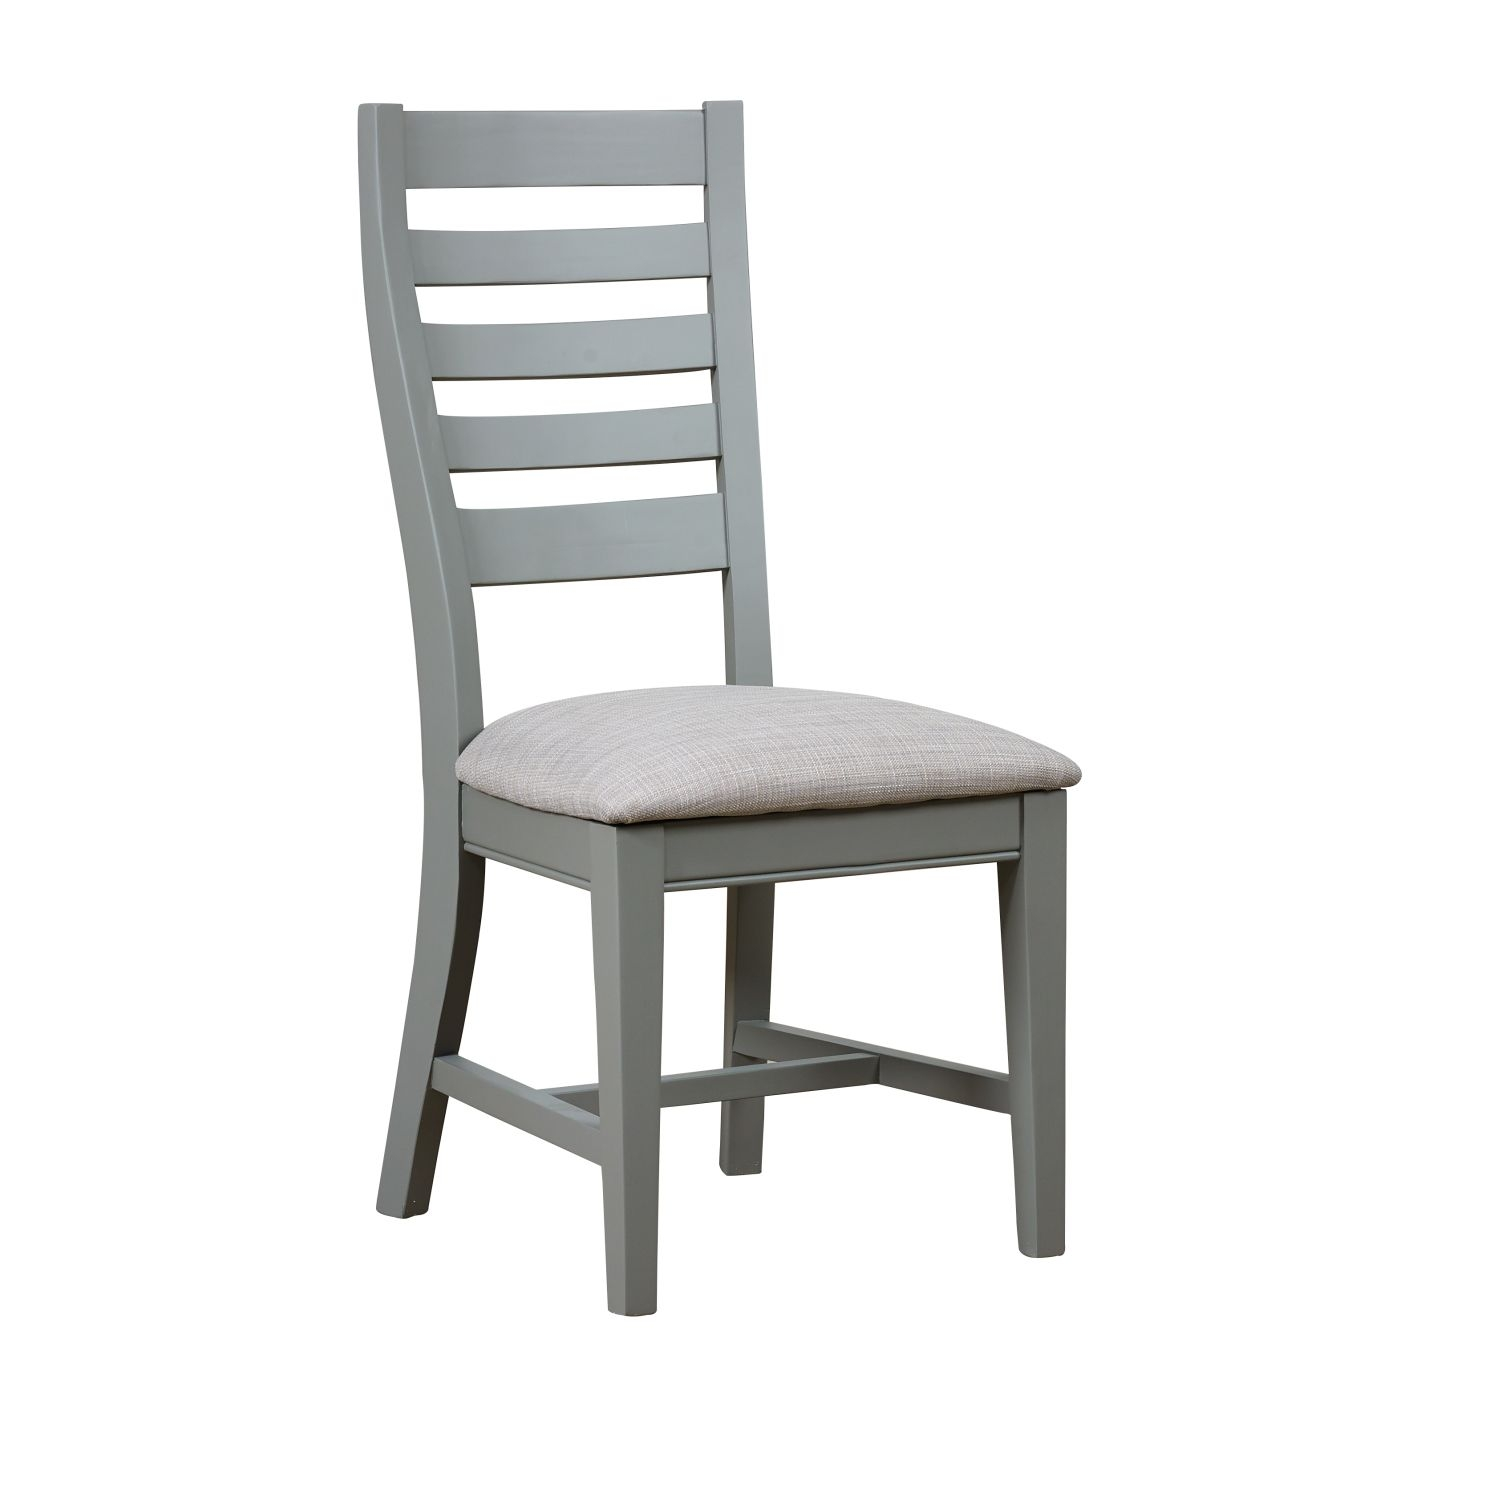 Image of Casa Wexford Dining Chair